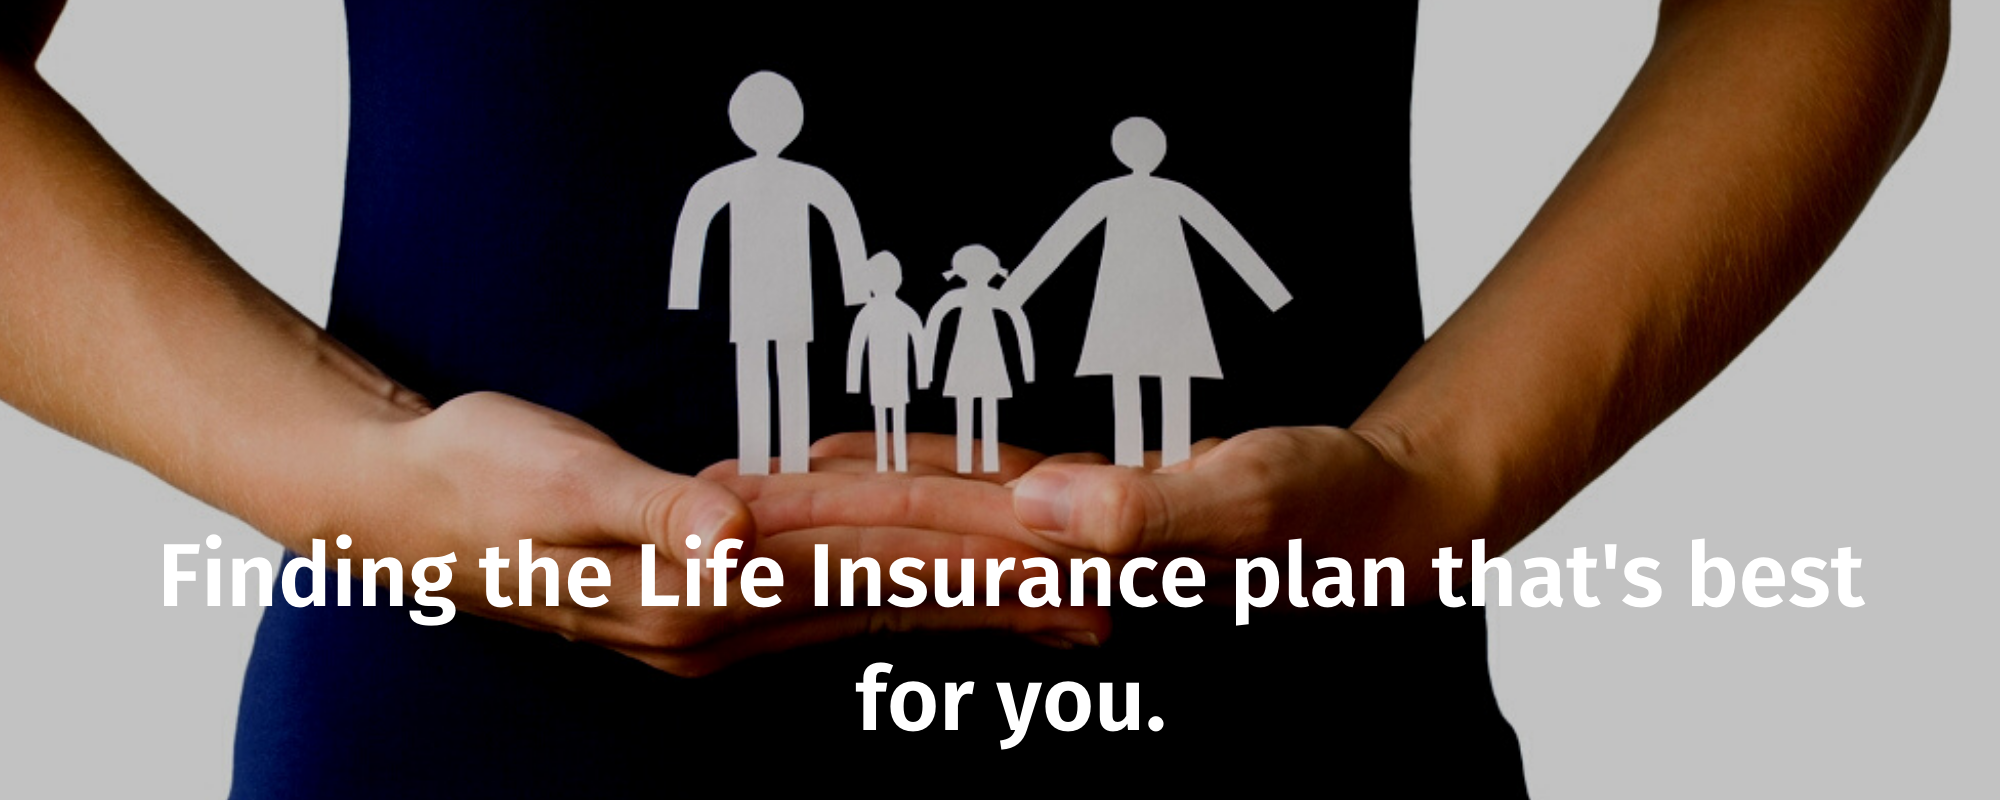 Finding the Life Insurance Plan That's Best for You